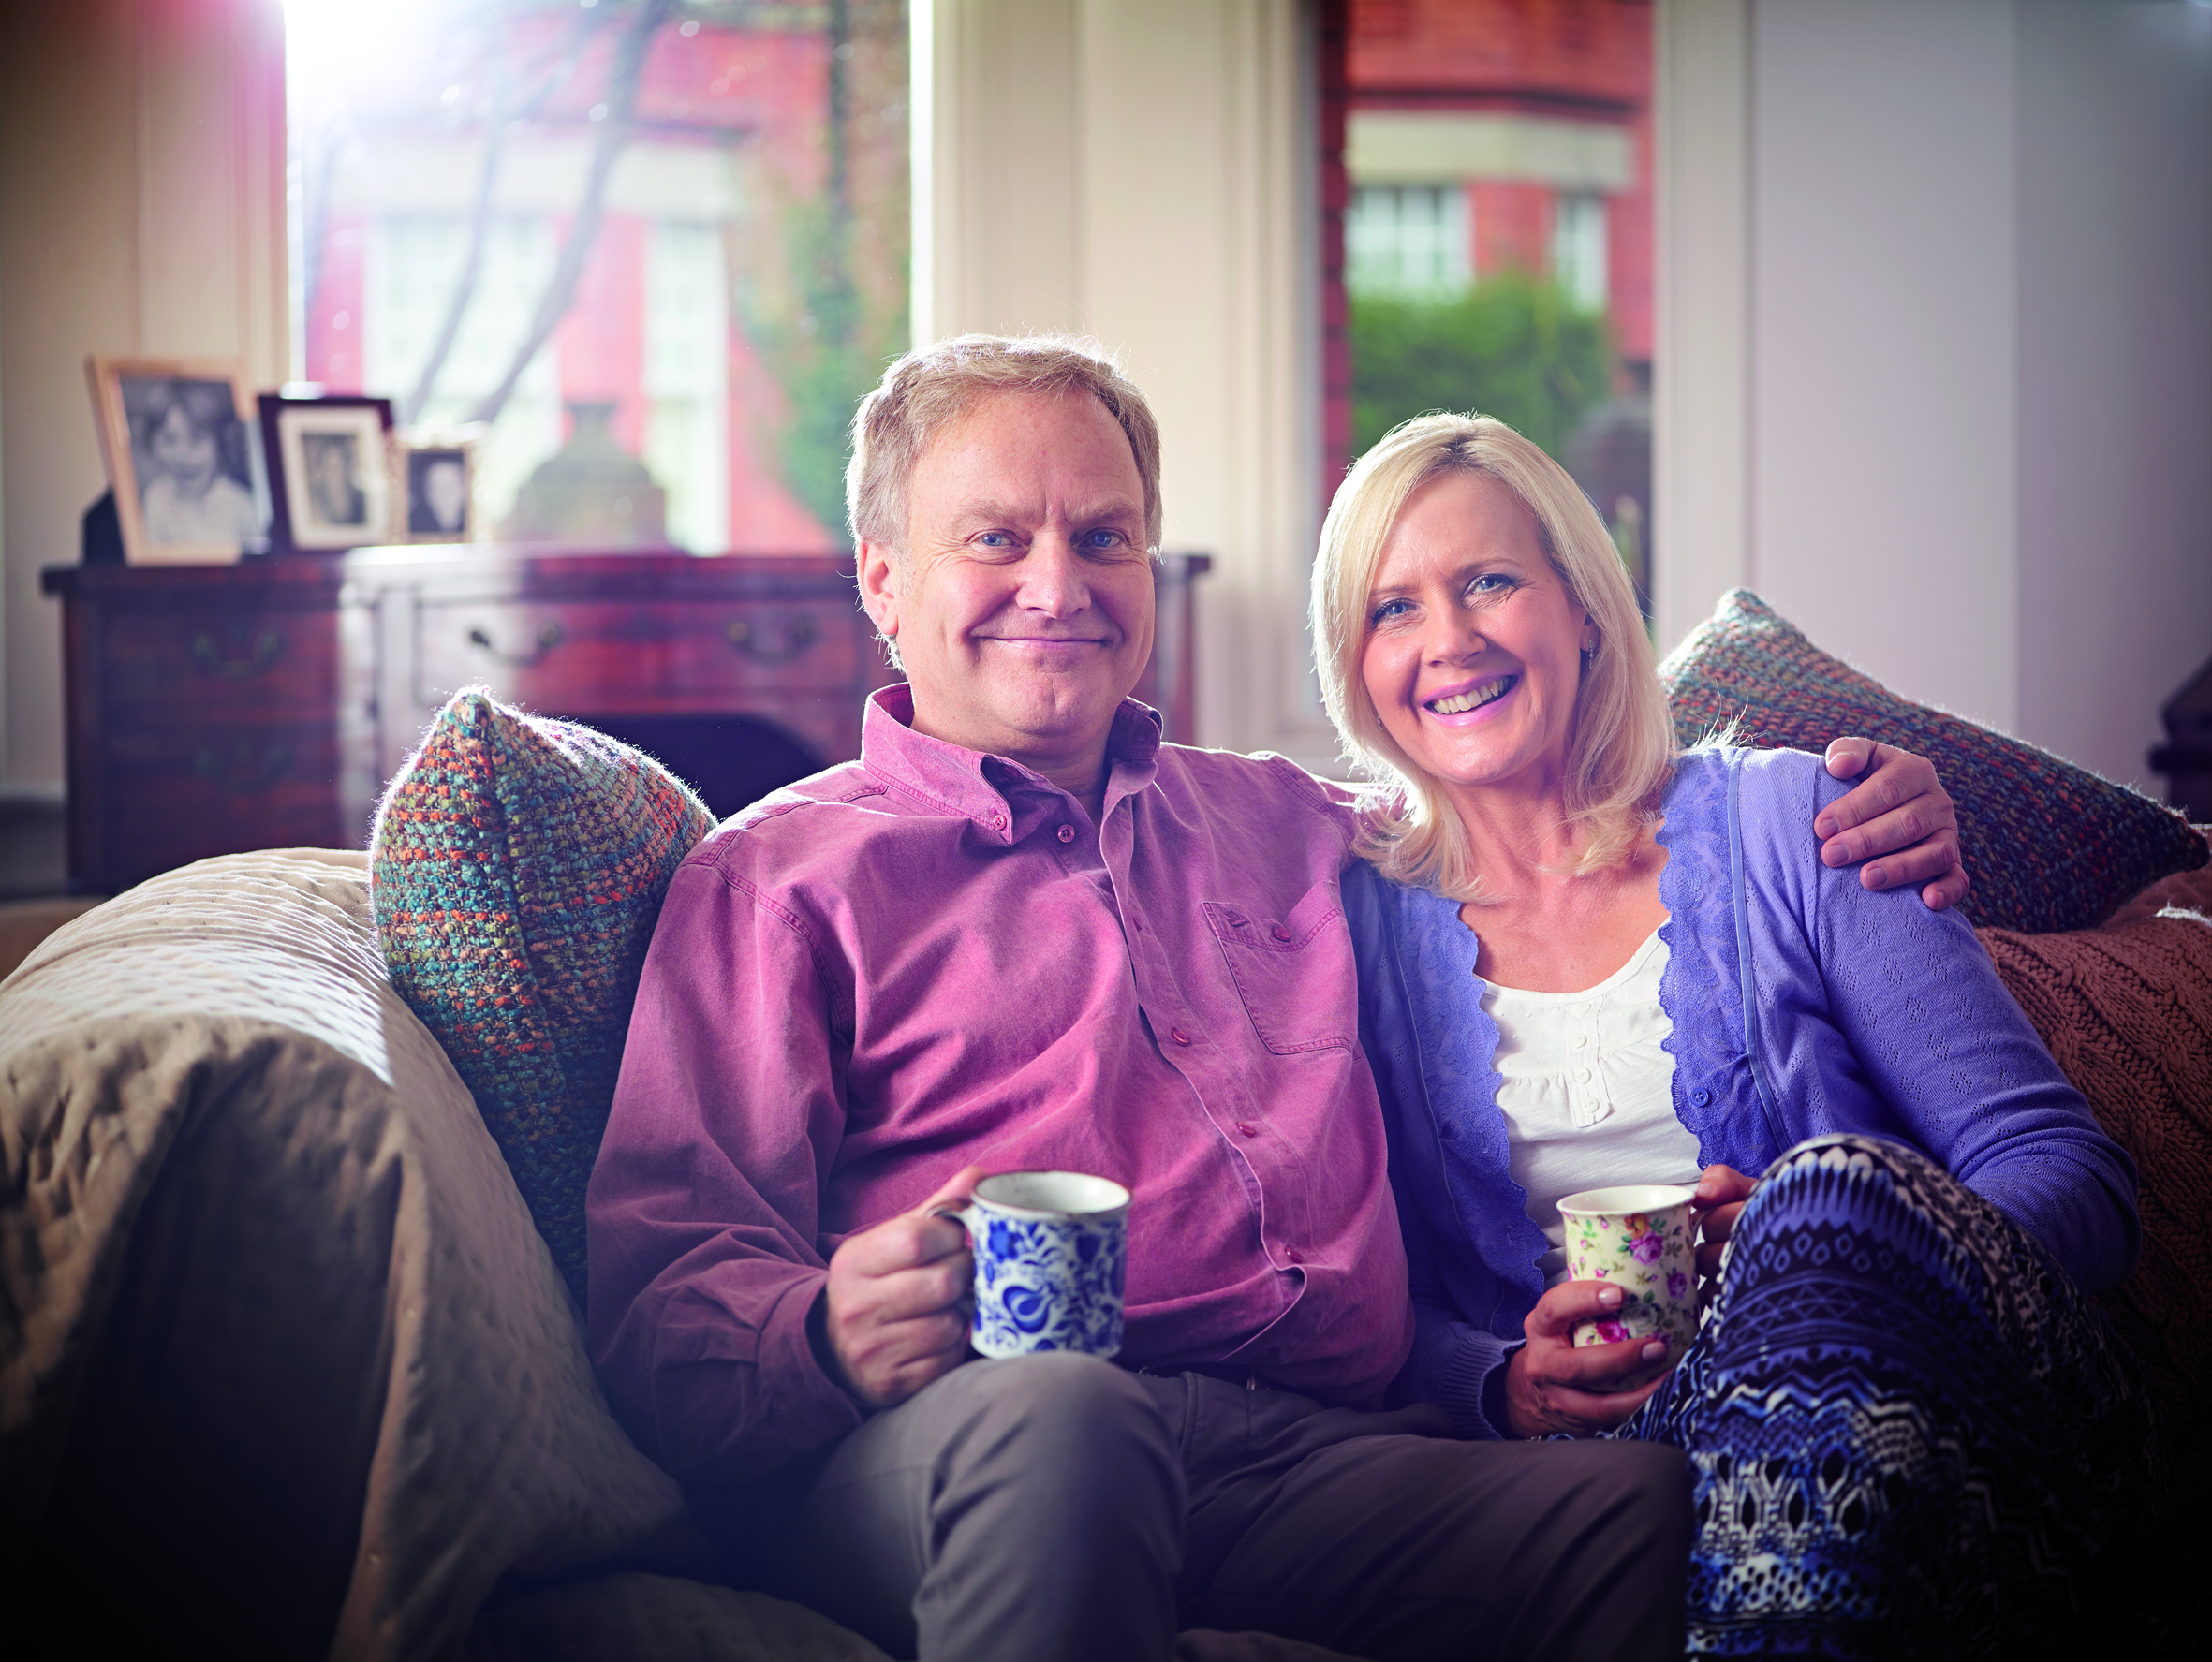 Photo of happy older couple, part of Bield's dedicated care PR campaign to raise profile of its services